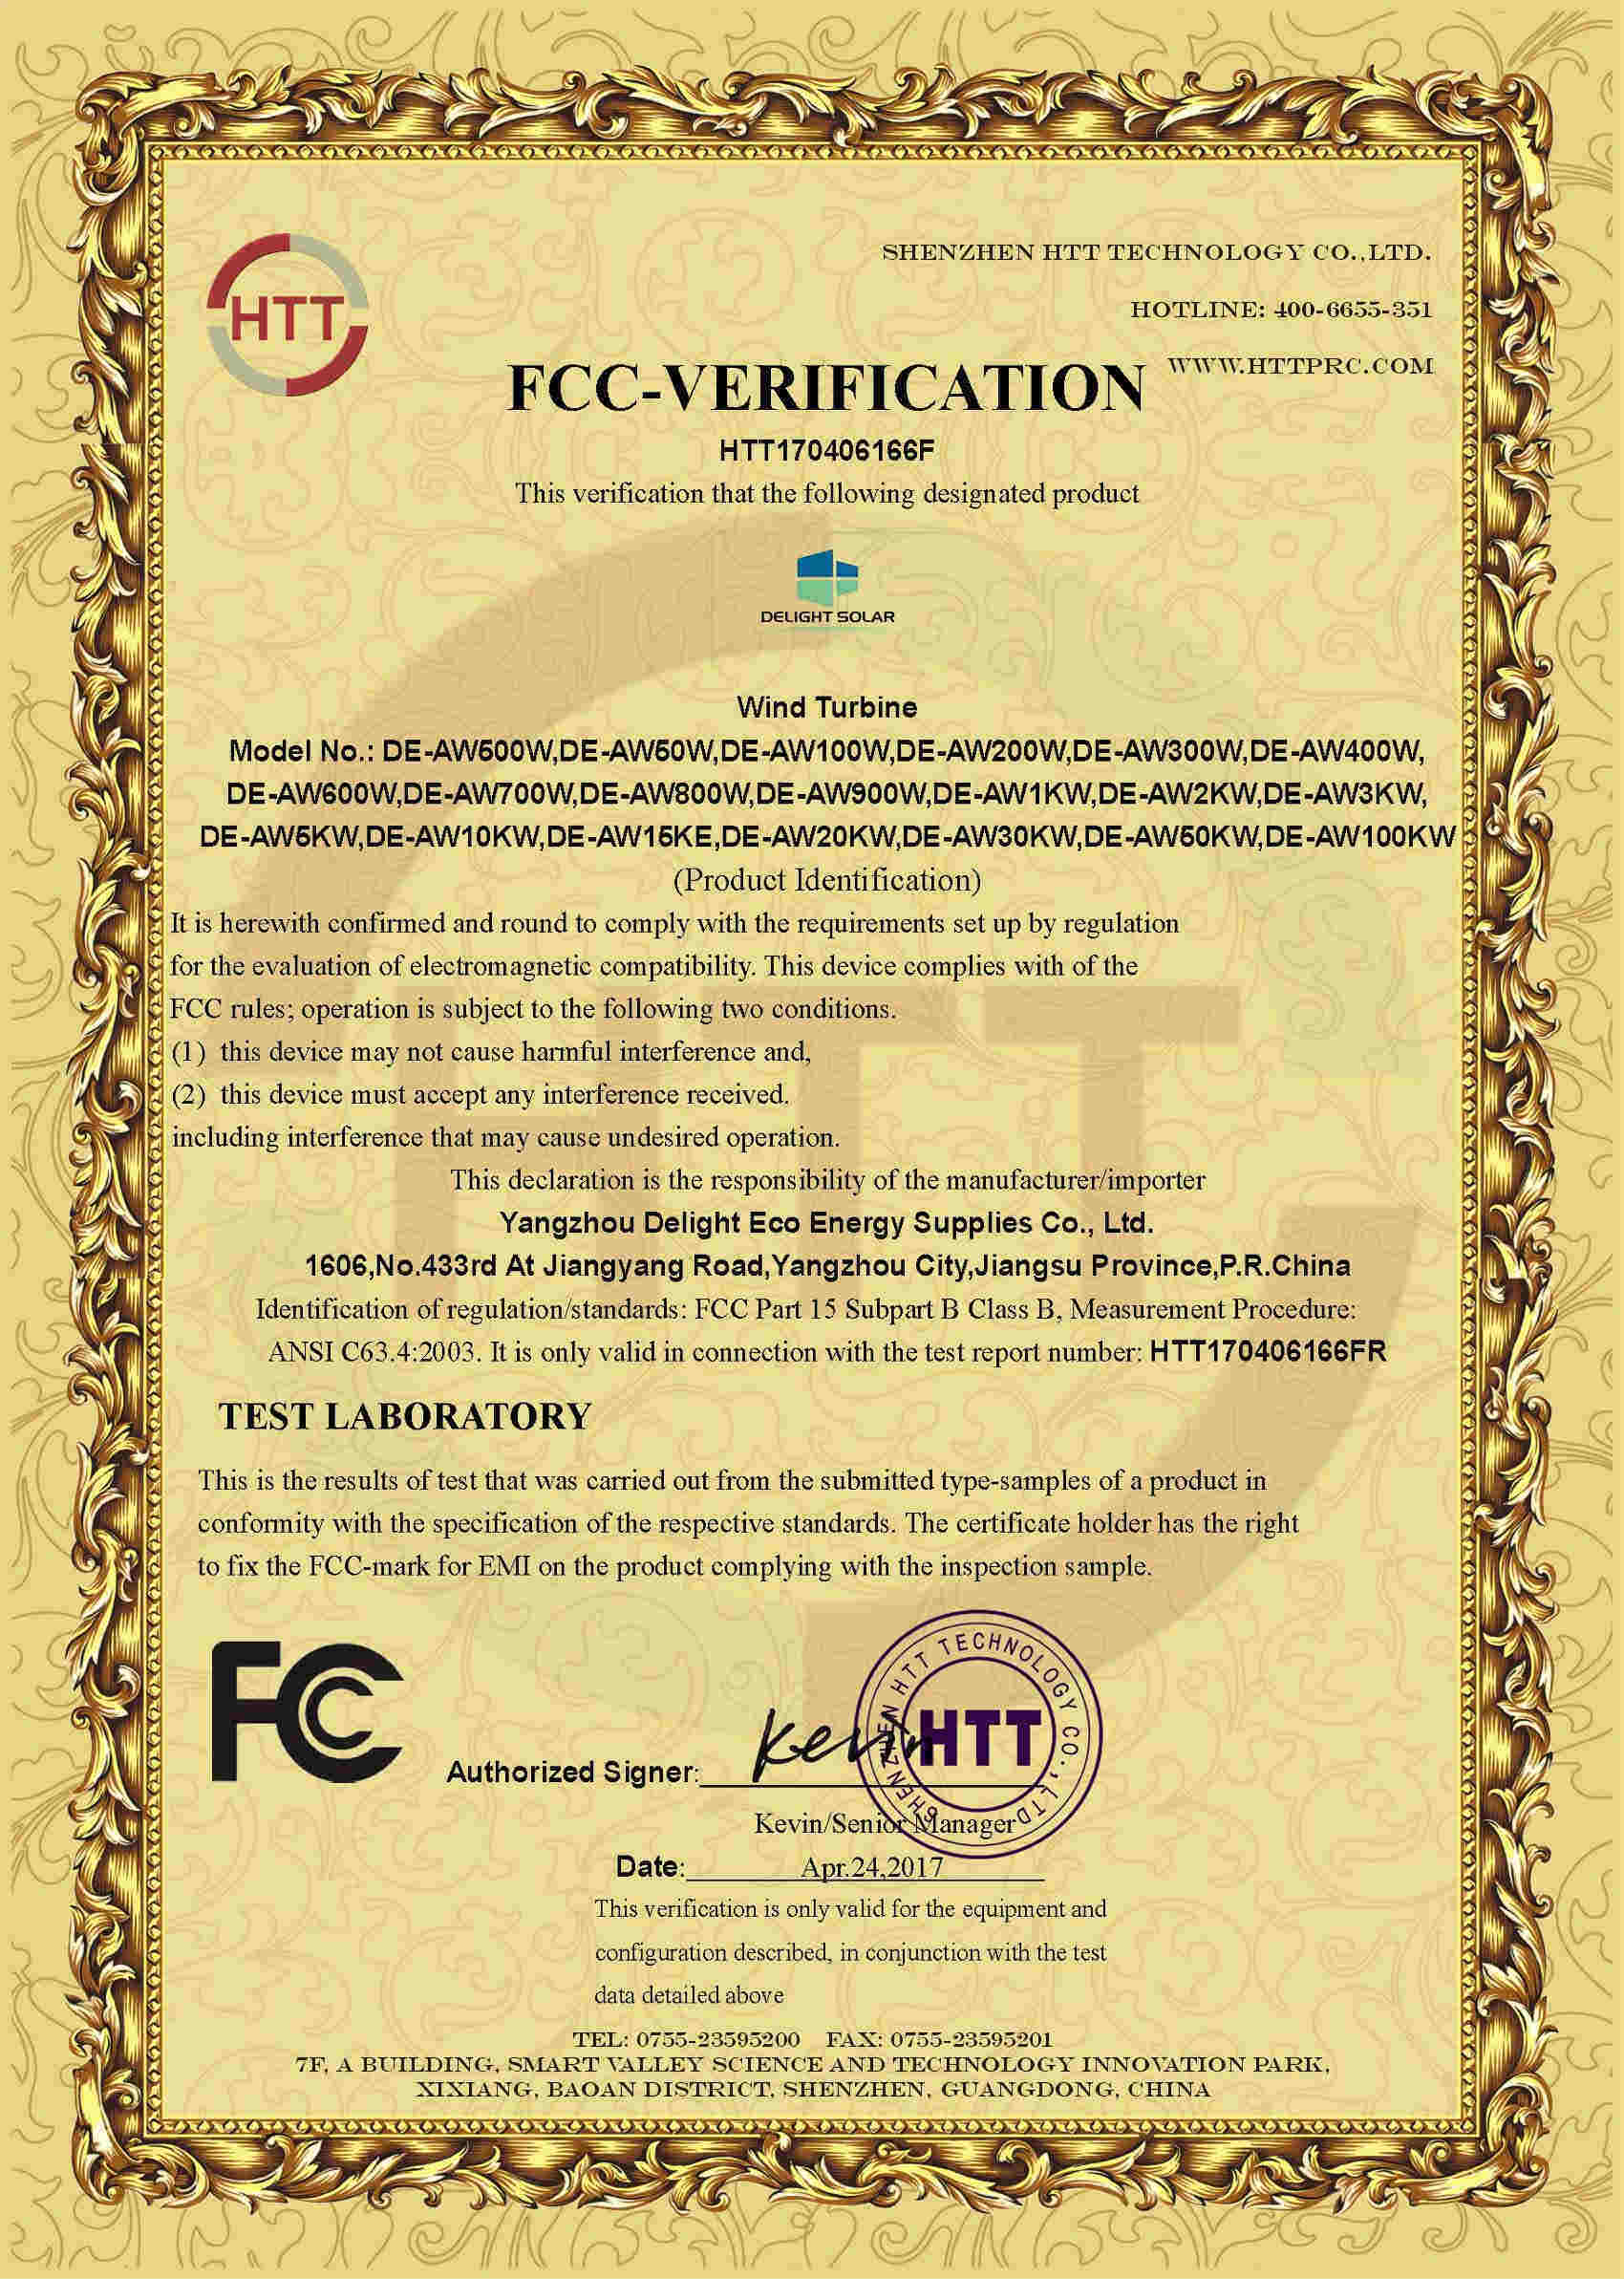 FCC certificate for wind turbine